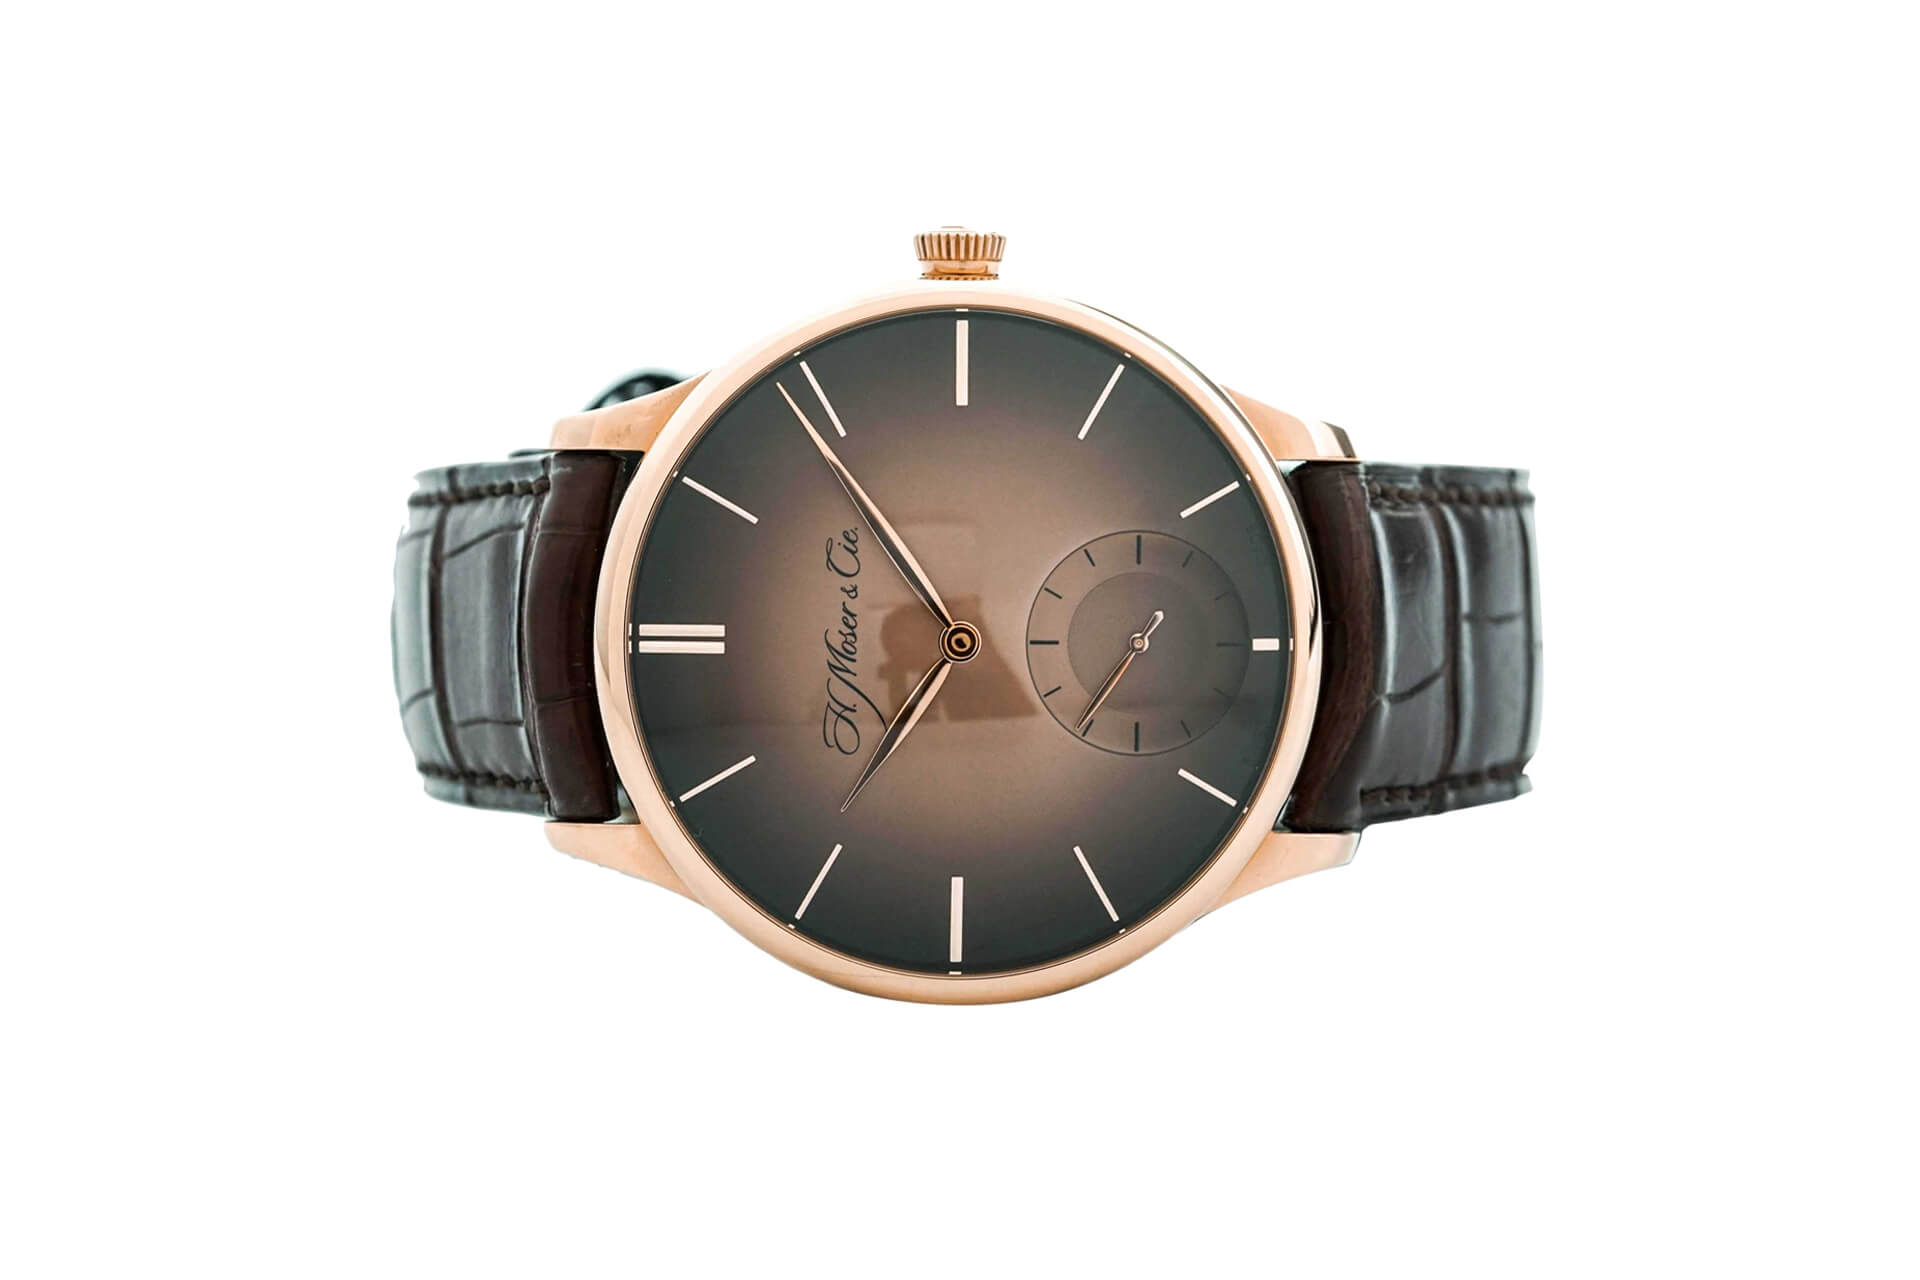 Đồng Hồ H. Moser & Cie Venturer Small Seconds 2327-0401